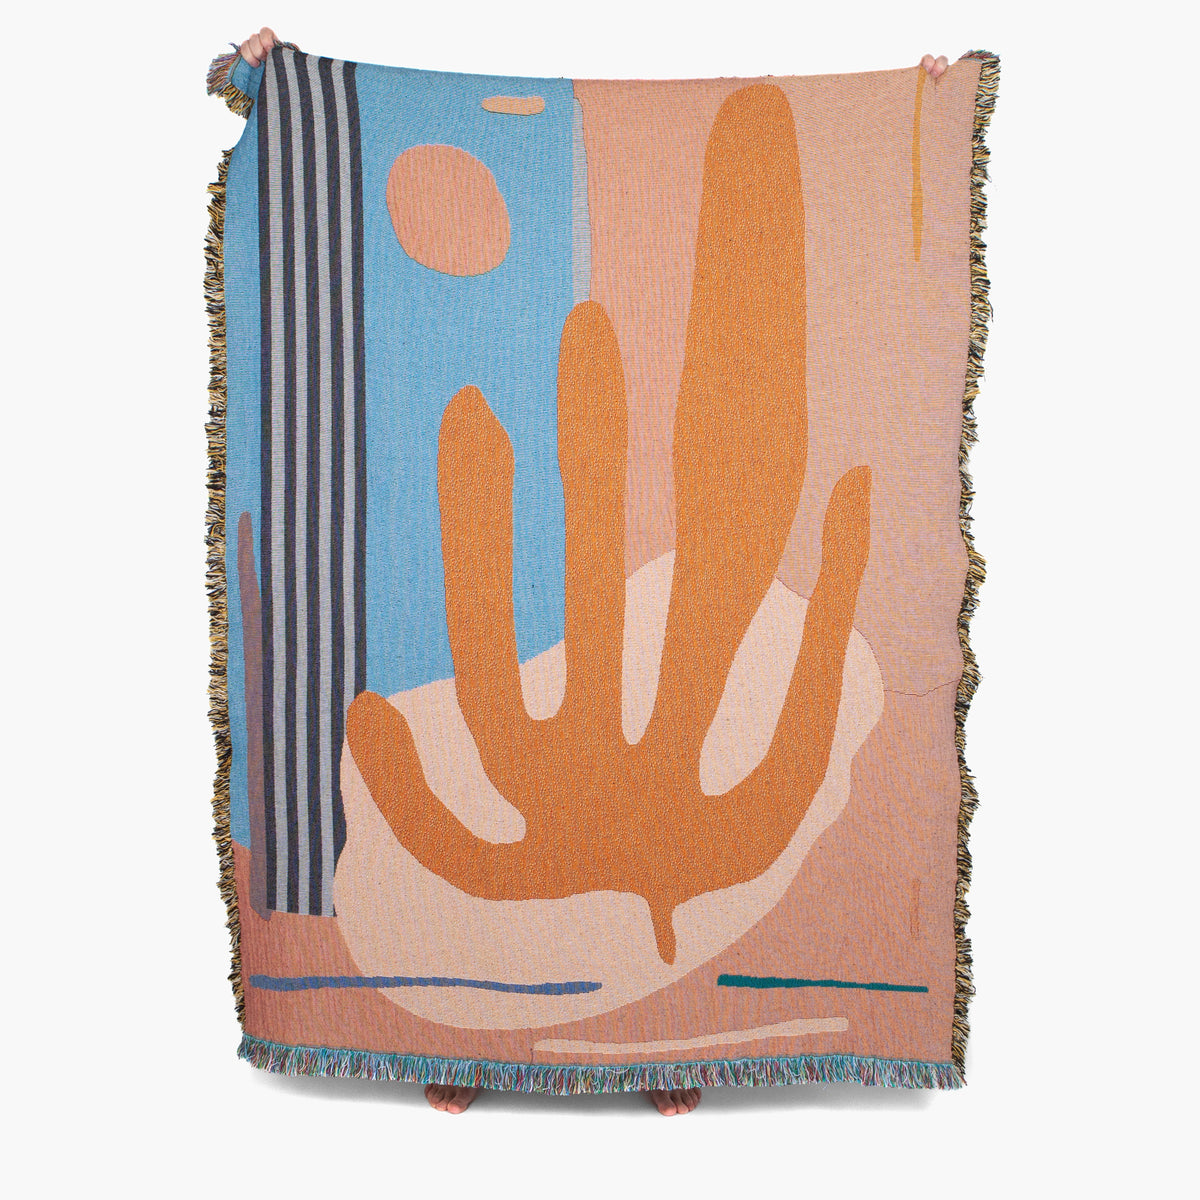 Raby Florence Fofana - Hazlewood Throw Slowdown Studio, on MAkers' Mrkt Makers Market Melbourne